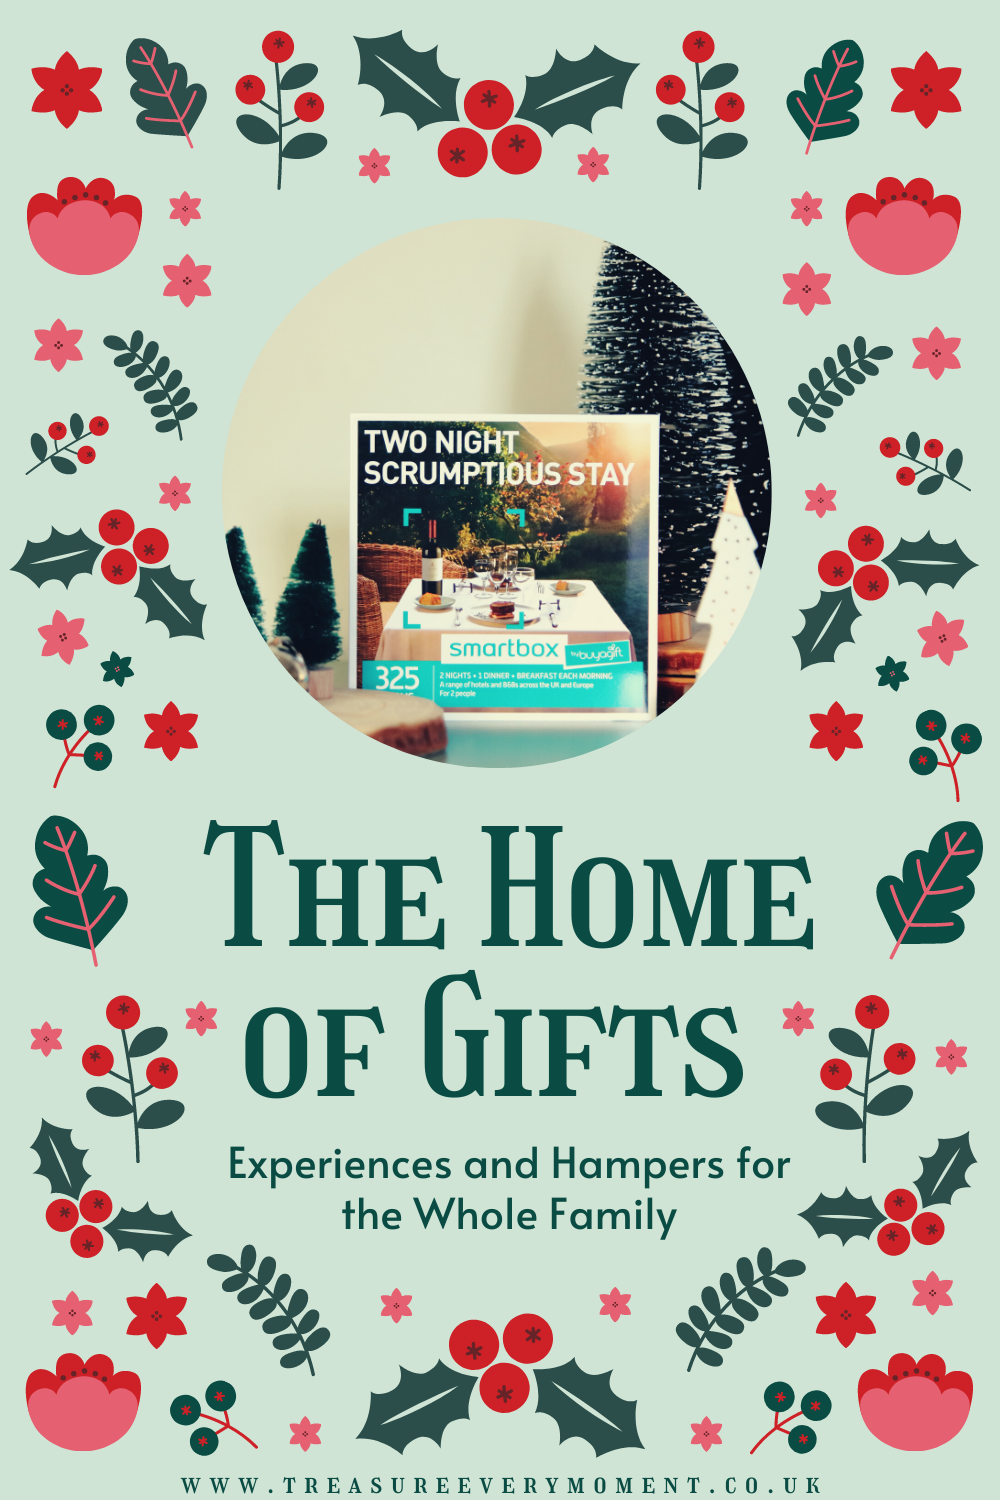 CHRISTMAS: The Home of Gifts, Experiences and Hampers for the Whole Family